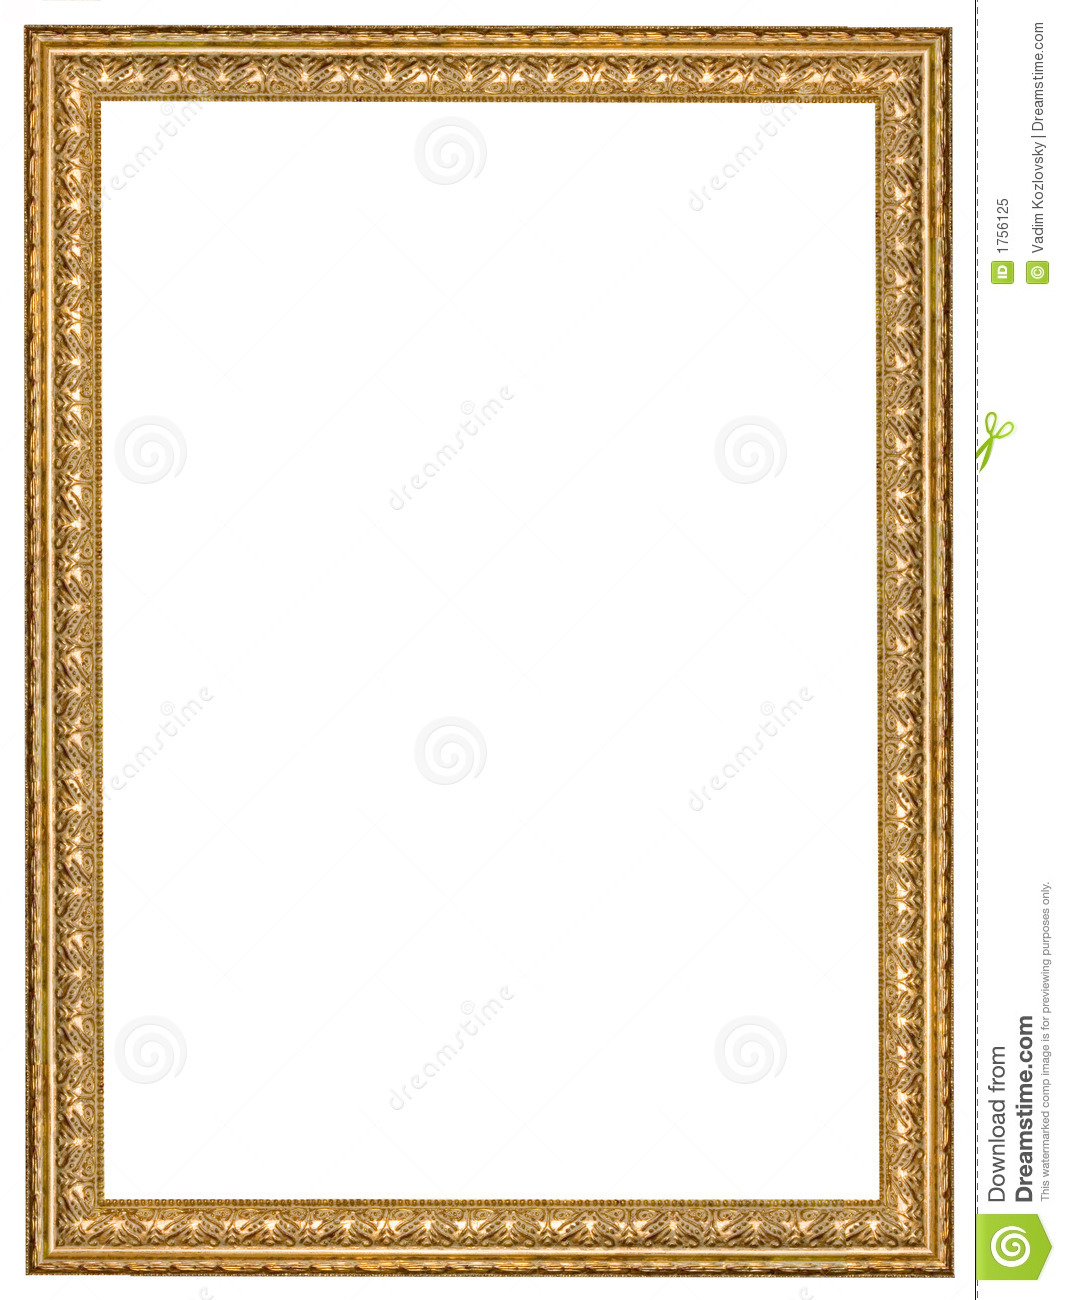 antique wood picture frames. Download Antique Wooden Frame Stock Image. Image Of Painting, -  1756125 Antique Wood Picture Frames